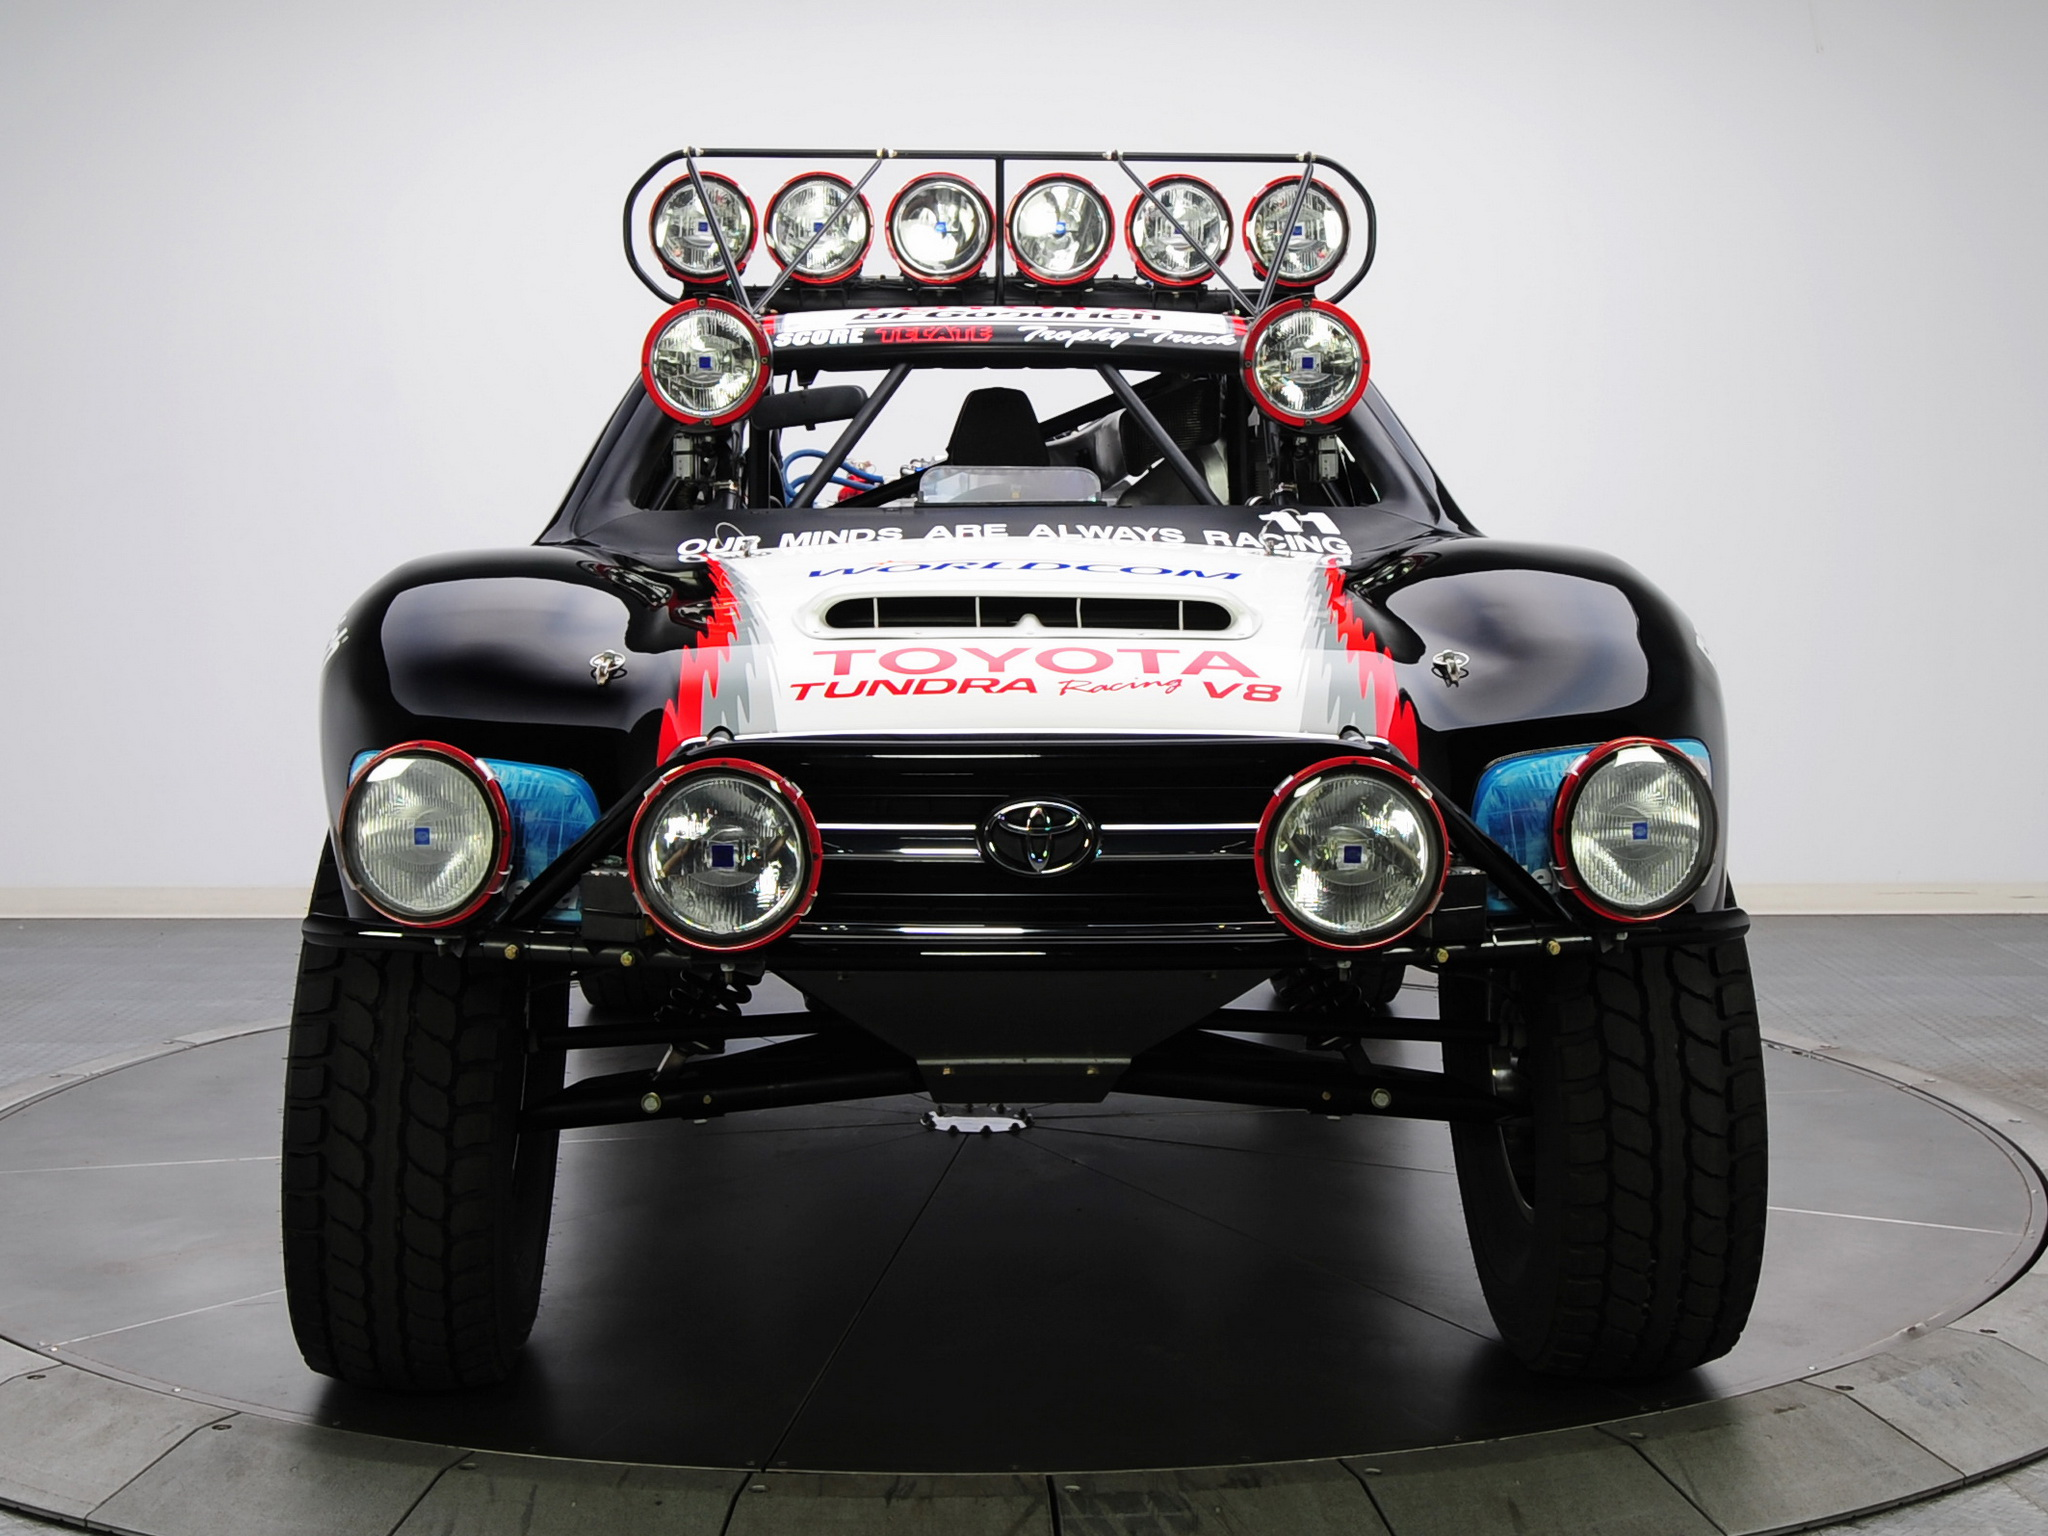 1994 Ppi Toyota Trophy Truck Race Racing Offroad Pickup F Wallpaper 2048x1536 134918 Wallpaperup